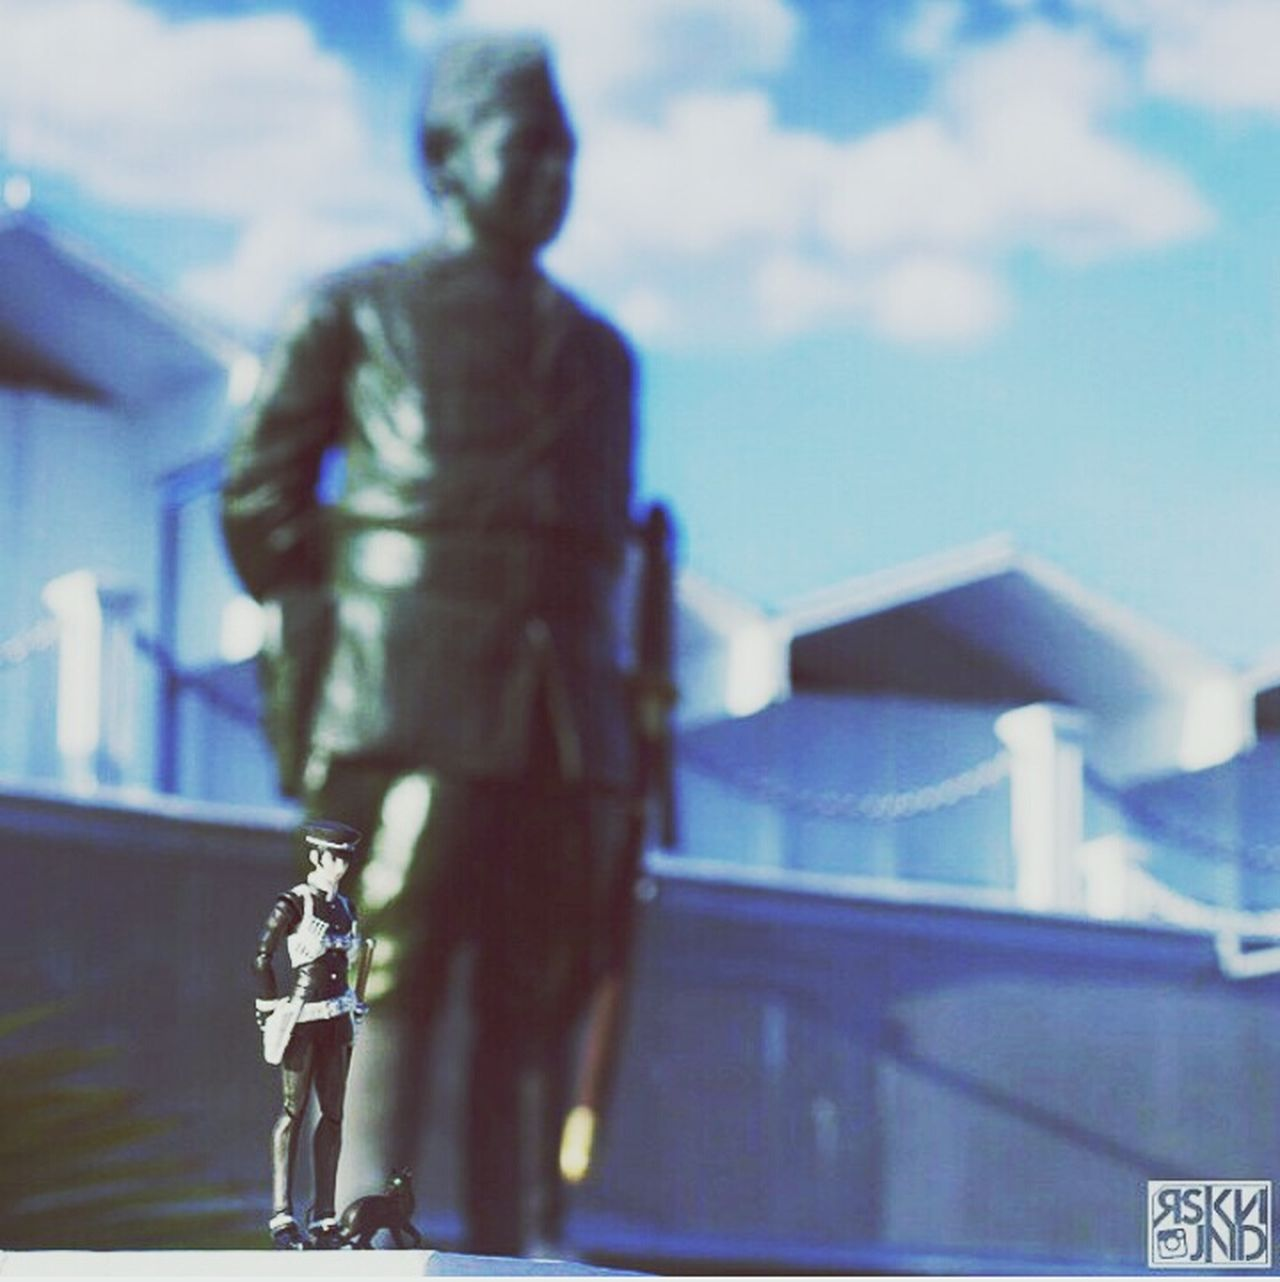 Sky Outdoors Toy People Monument